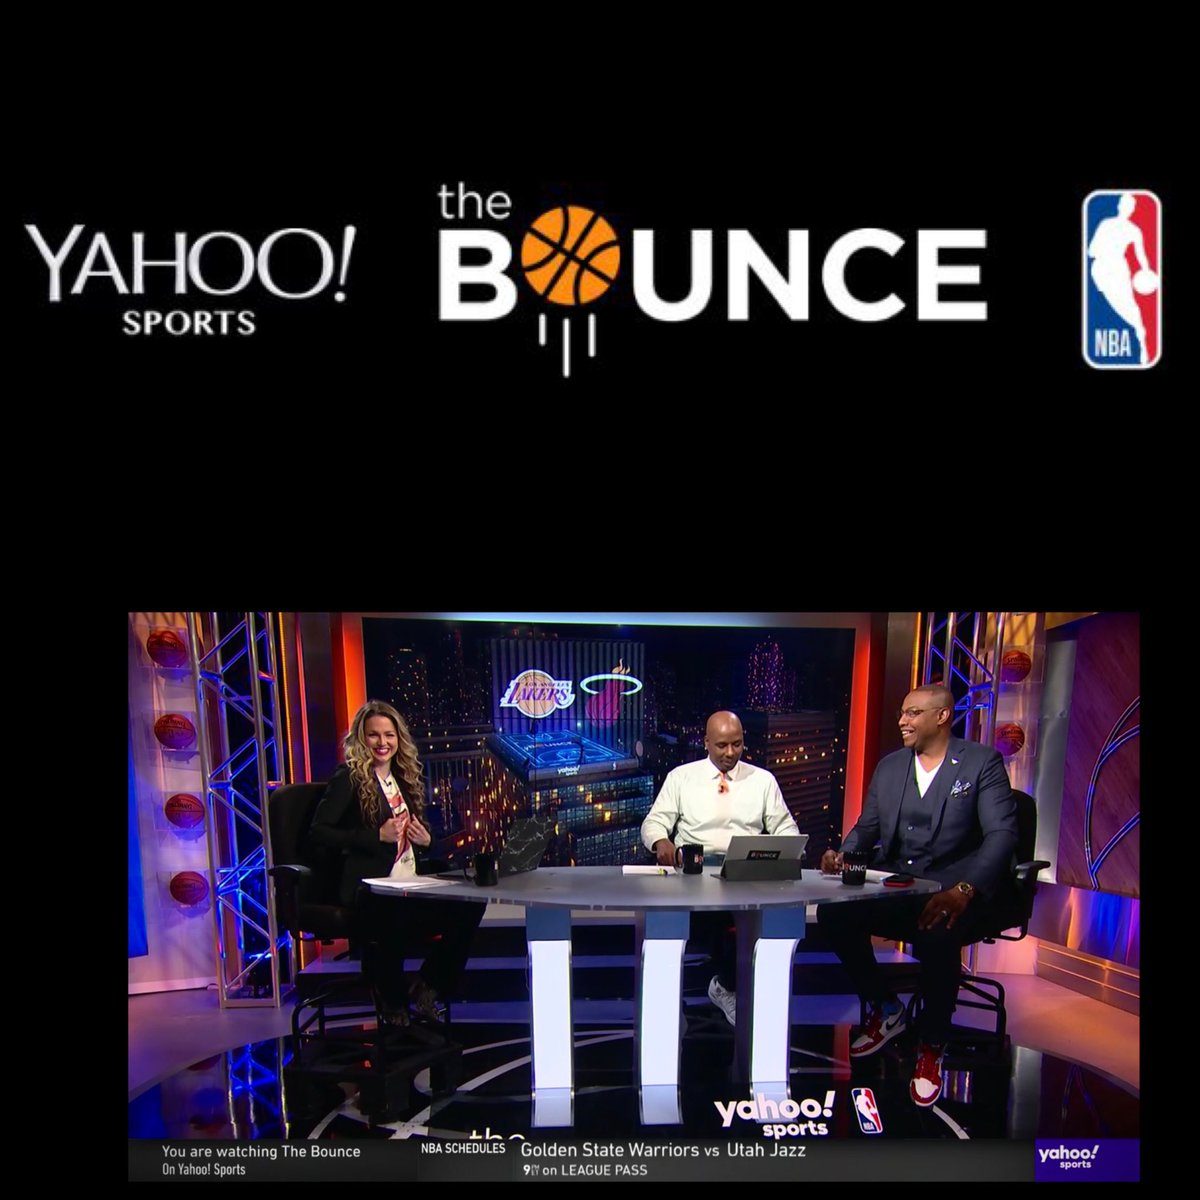 Allie is back! I hope you guys are watching @nba 🏀 with us #TheBounce online @yahoosports app *Mon * Wed *Fri. 7:30 p.m. (EST) Until Final Basketball Game Ends! 👀 with Host @ALaForce and Analysts @qrich @realtuffjuice makeup, hair and male grooming by @jamillahsimmons